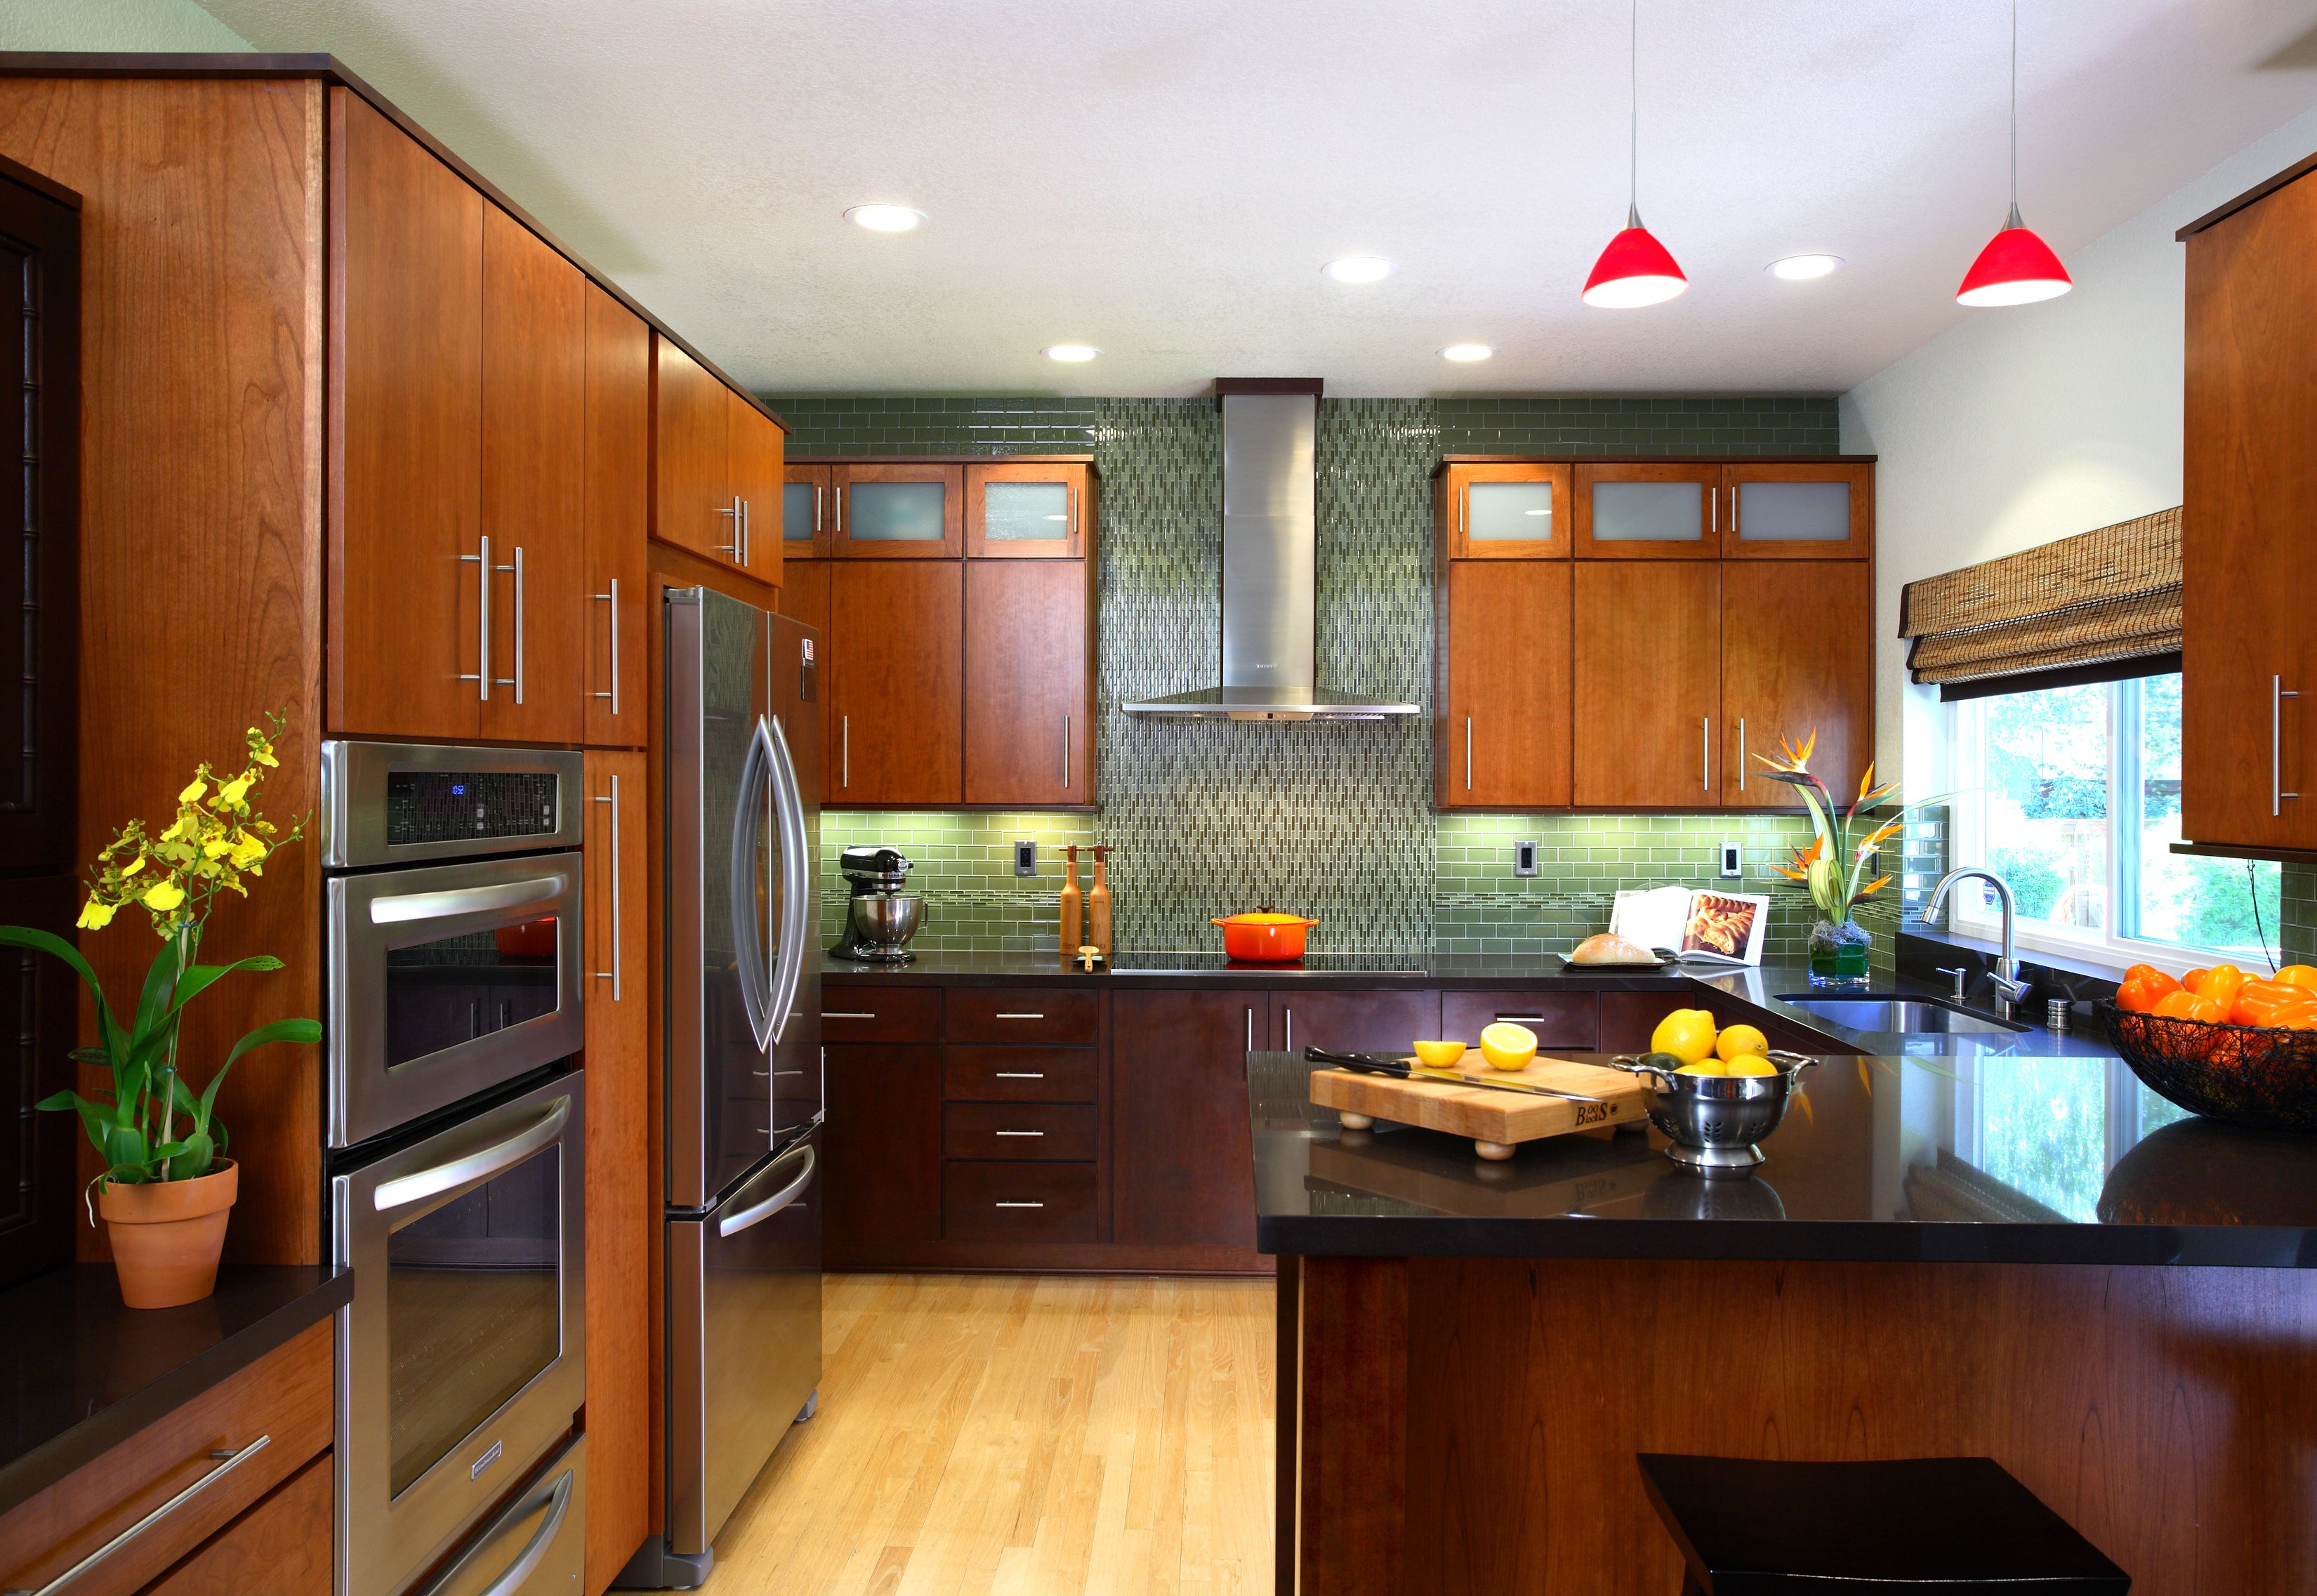 Tile Work Frosted Glass Wood Color Modern Kitchen Design Zen Kitchen Modern Zen Kitchen